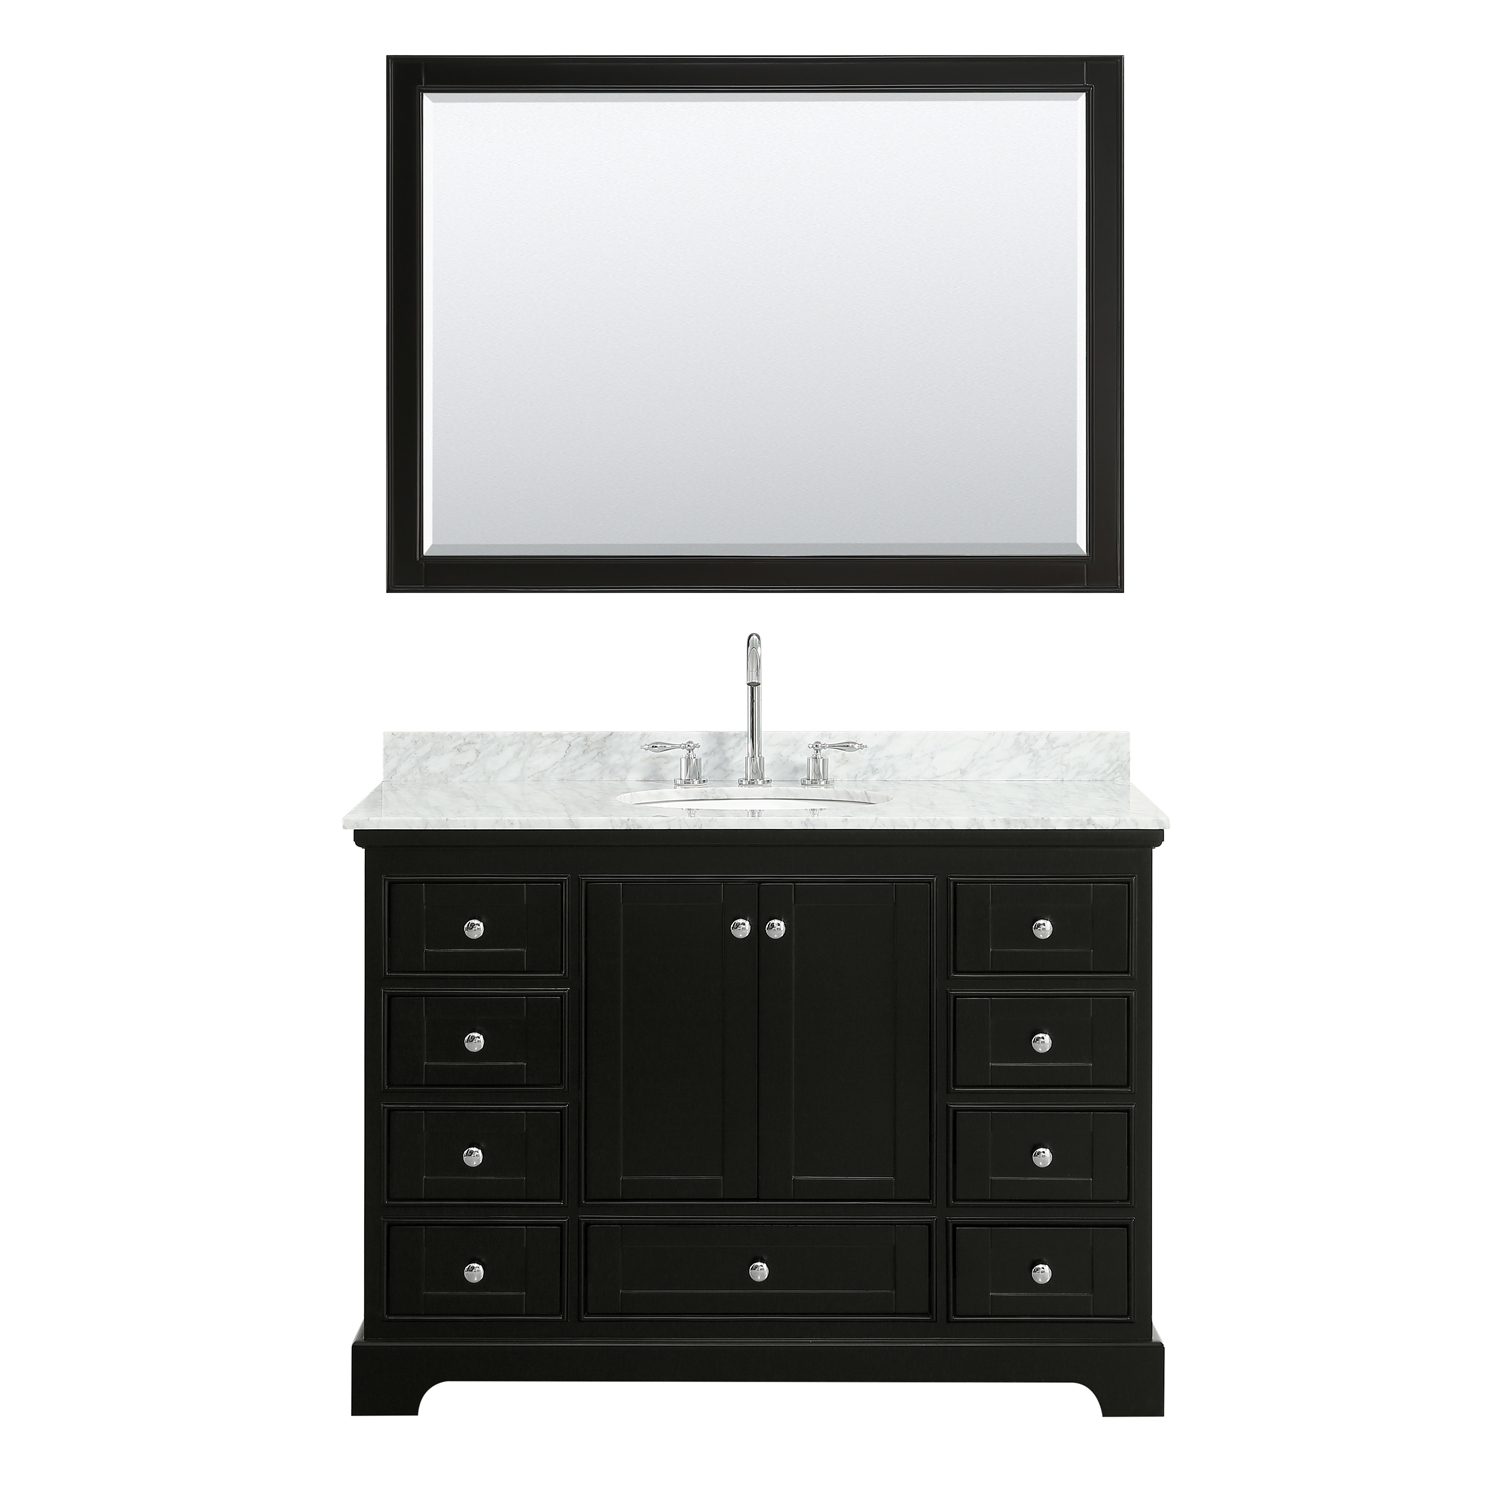 "48"" Single Bathroom Vanity in White Carrara Marble Countertop with Undermount Porcelain Sink, Medicine Cabinet, Mirror and Color Options"